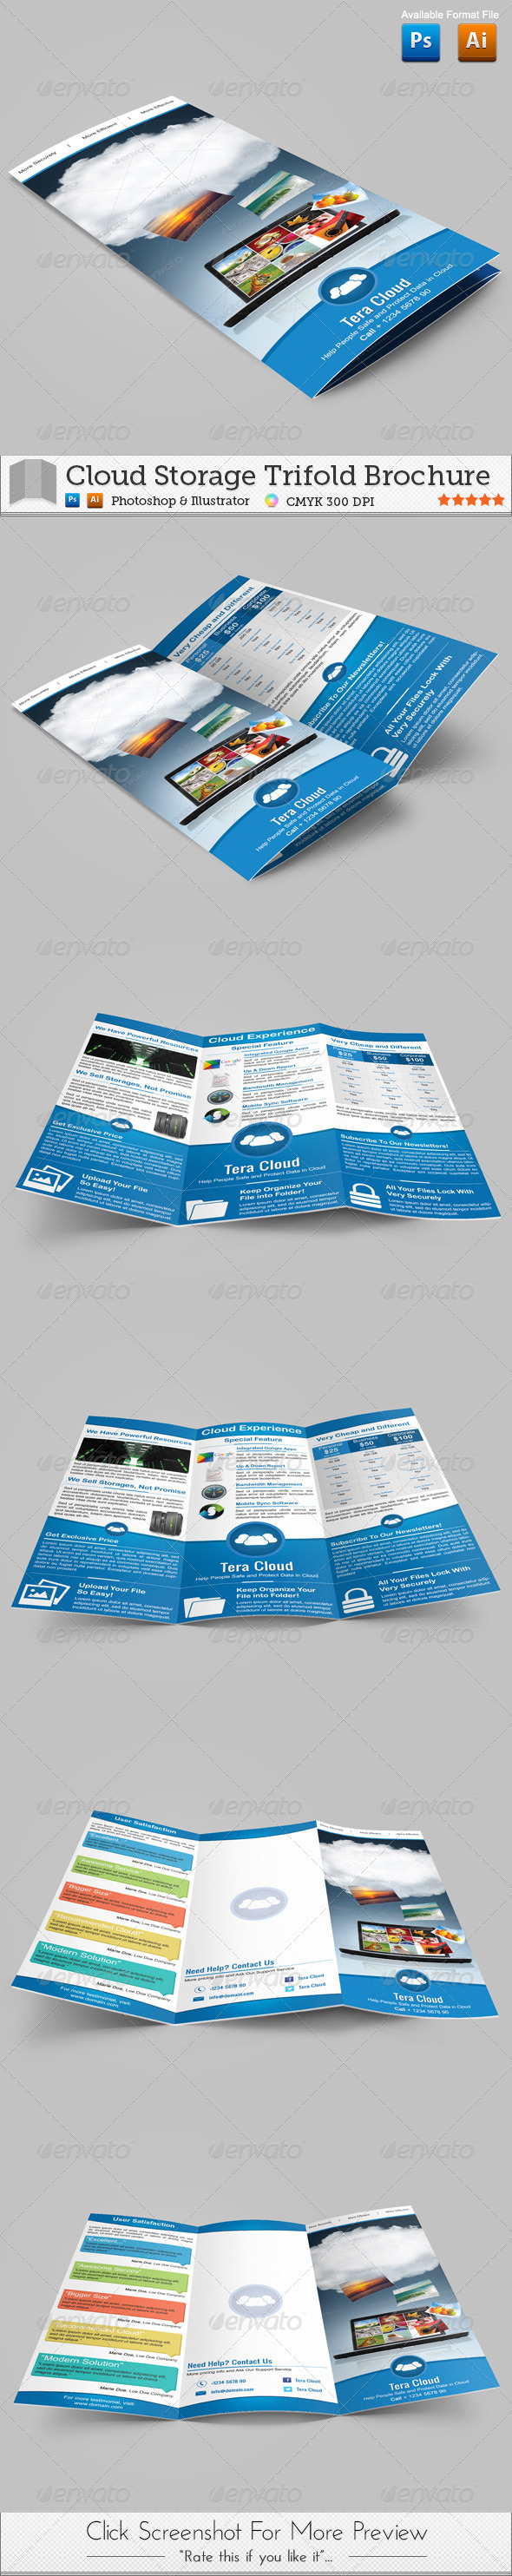 Cloud Storage Trifold Brochure - Brochures Print Templates